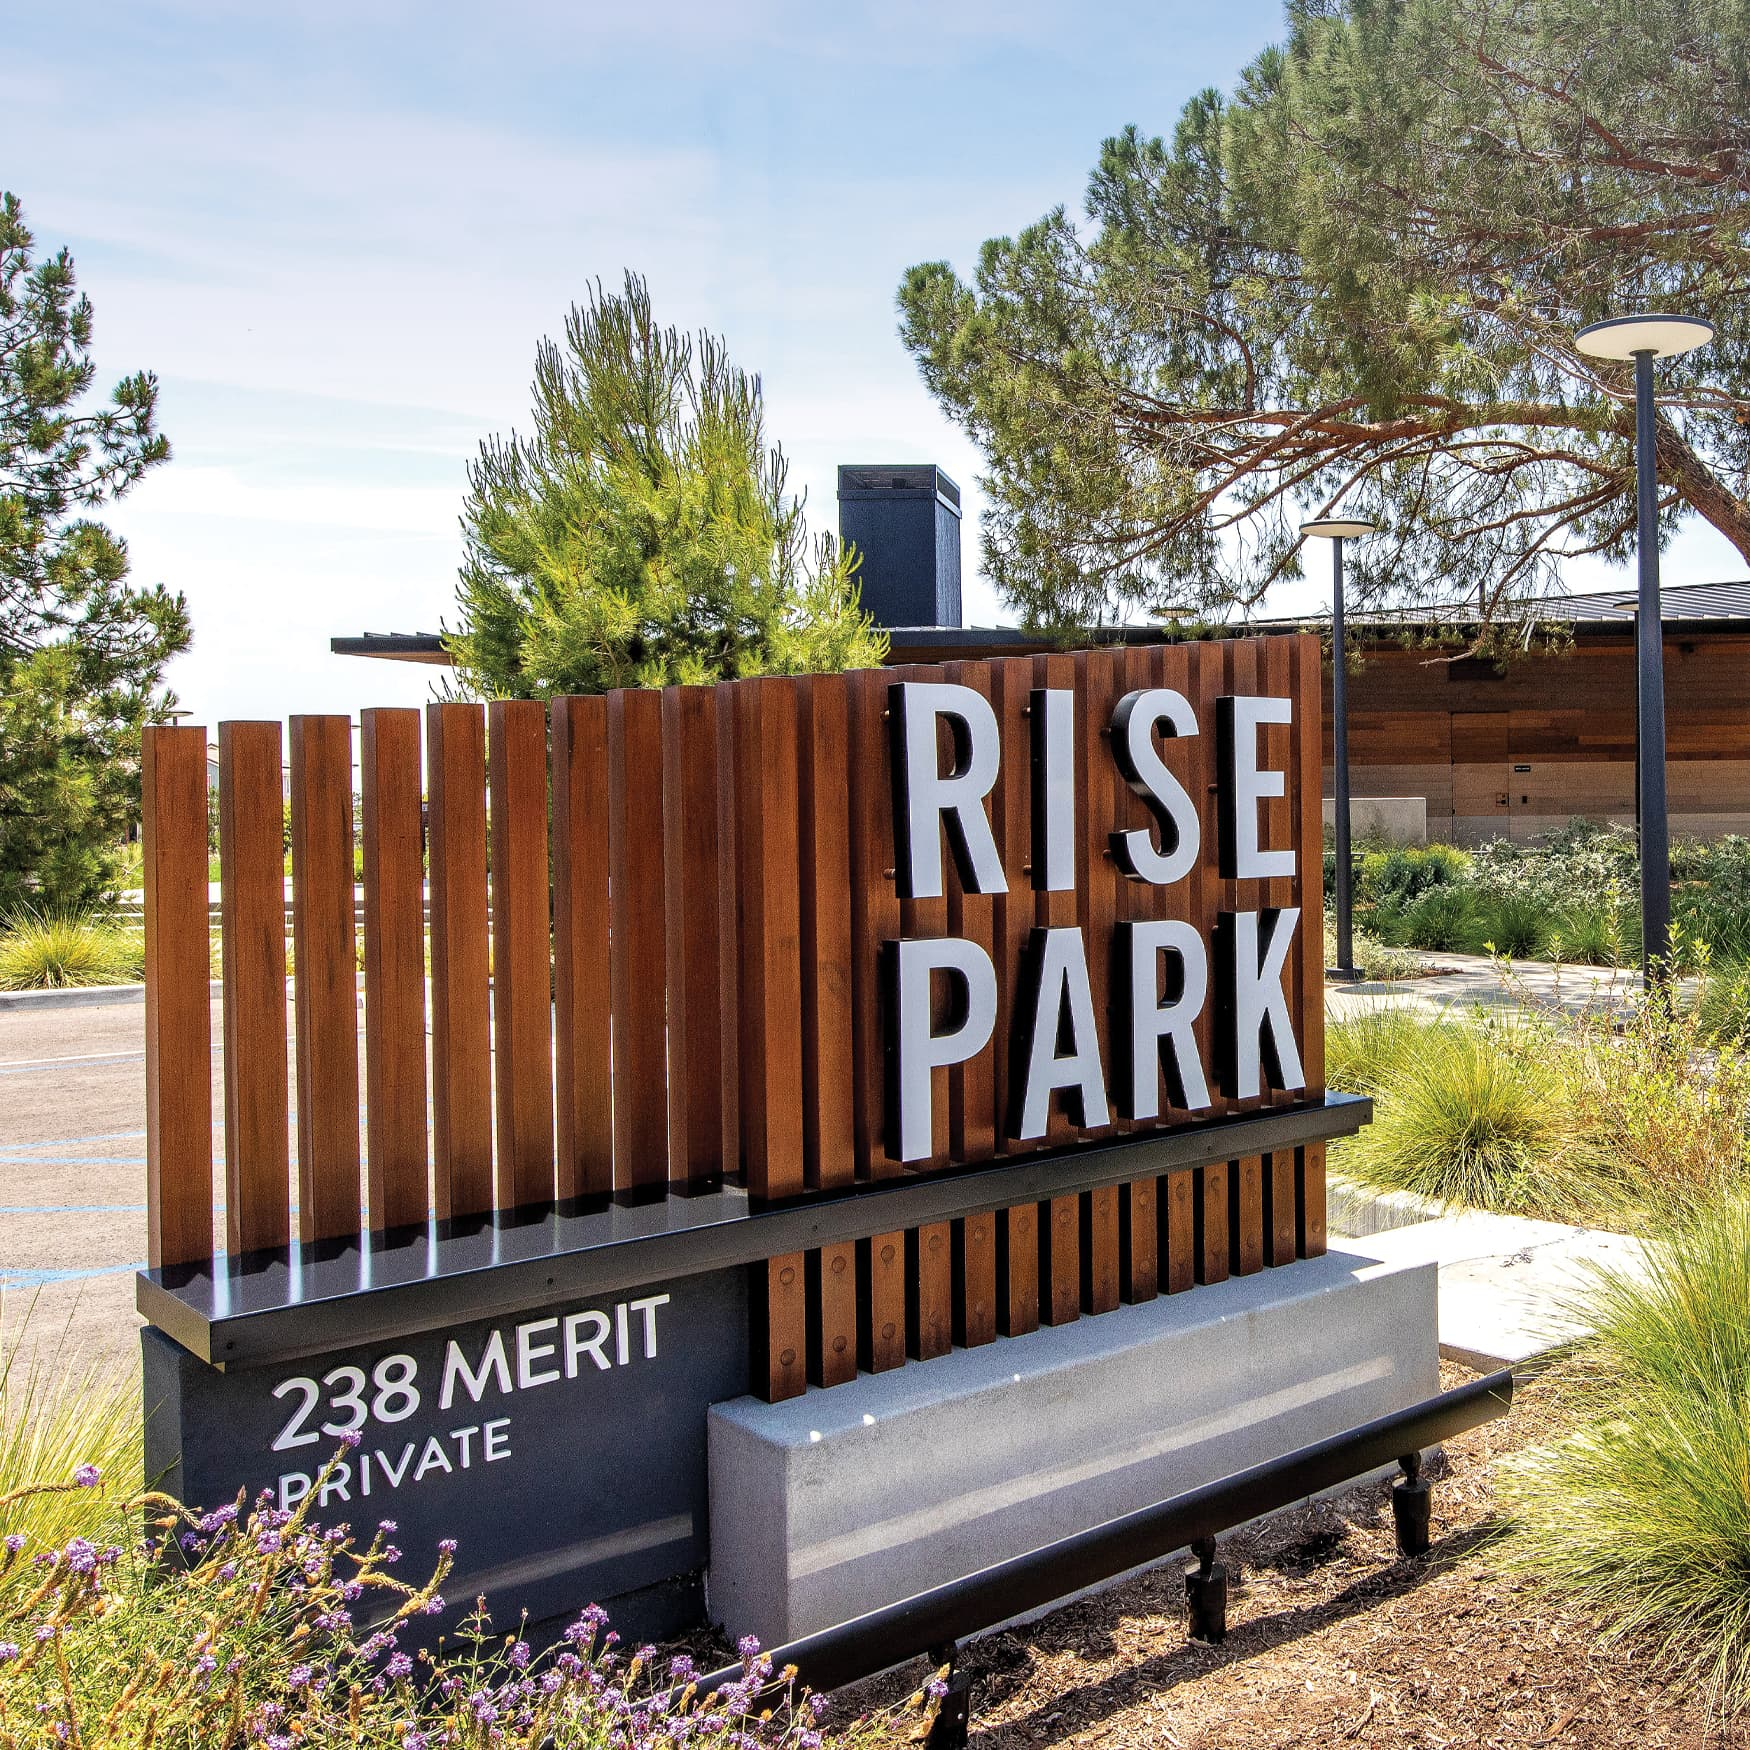 Wooden entrance sign for Rise Park in Irvine, California.